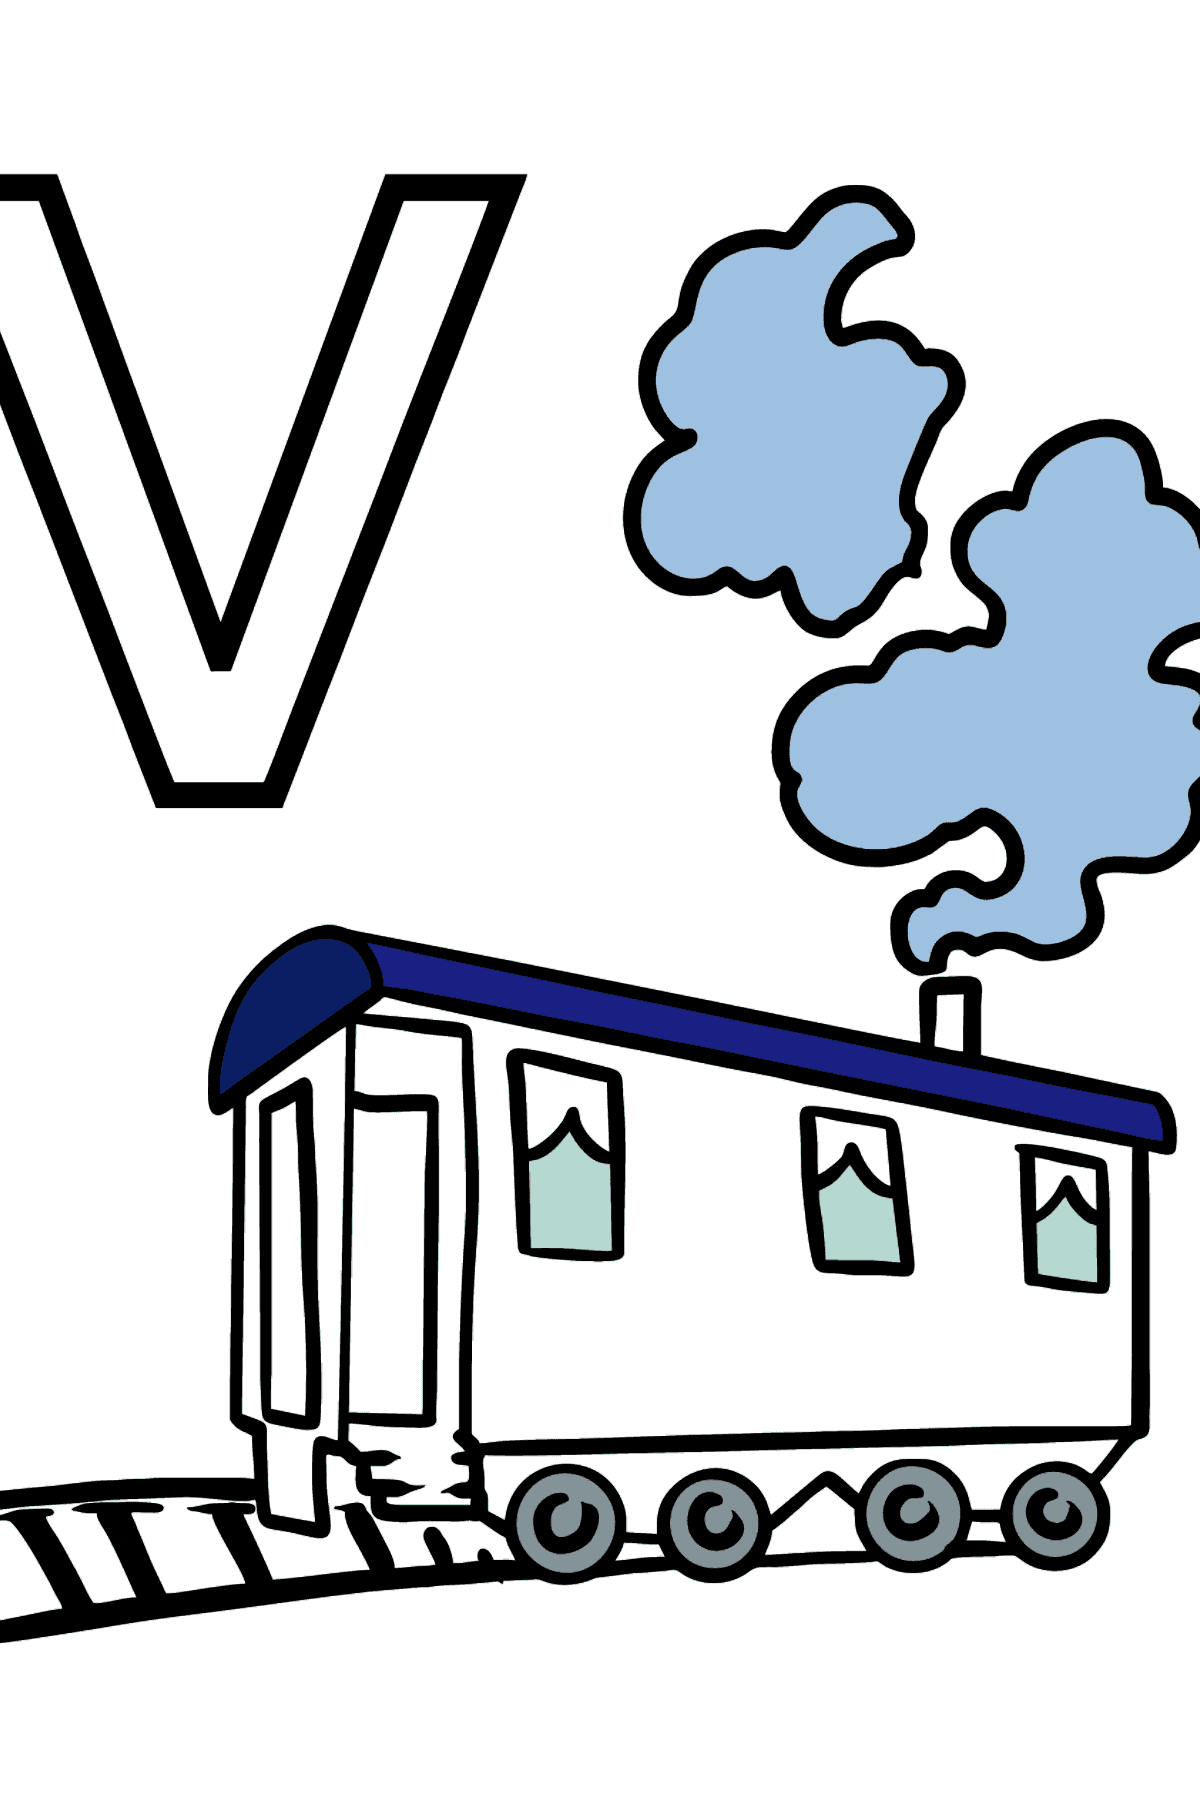 English Letter V coloring pages - VAGON - Coloring Pages for Kids